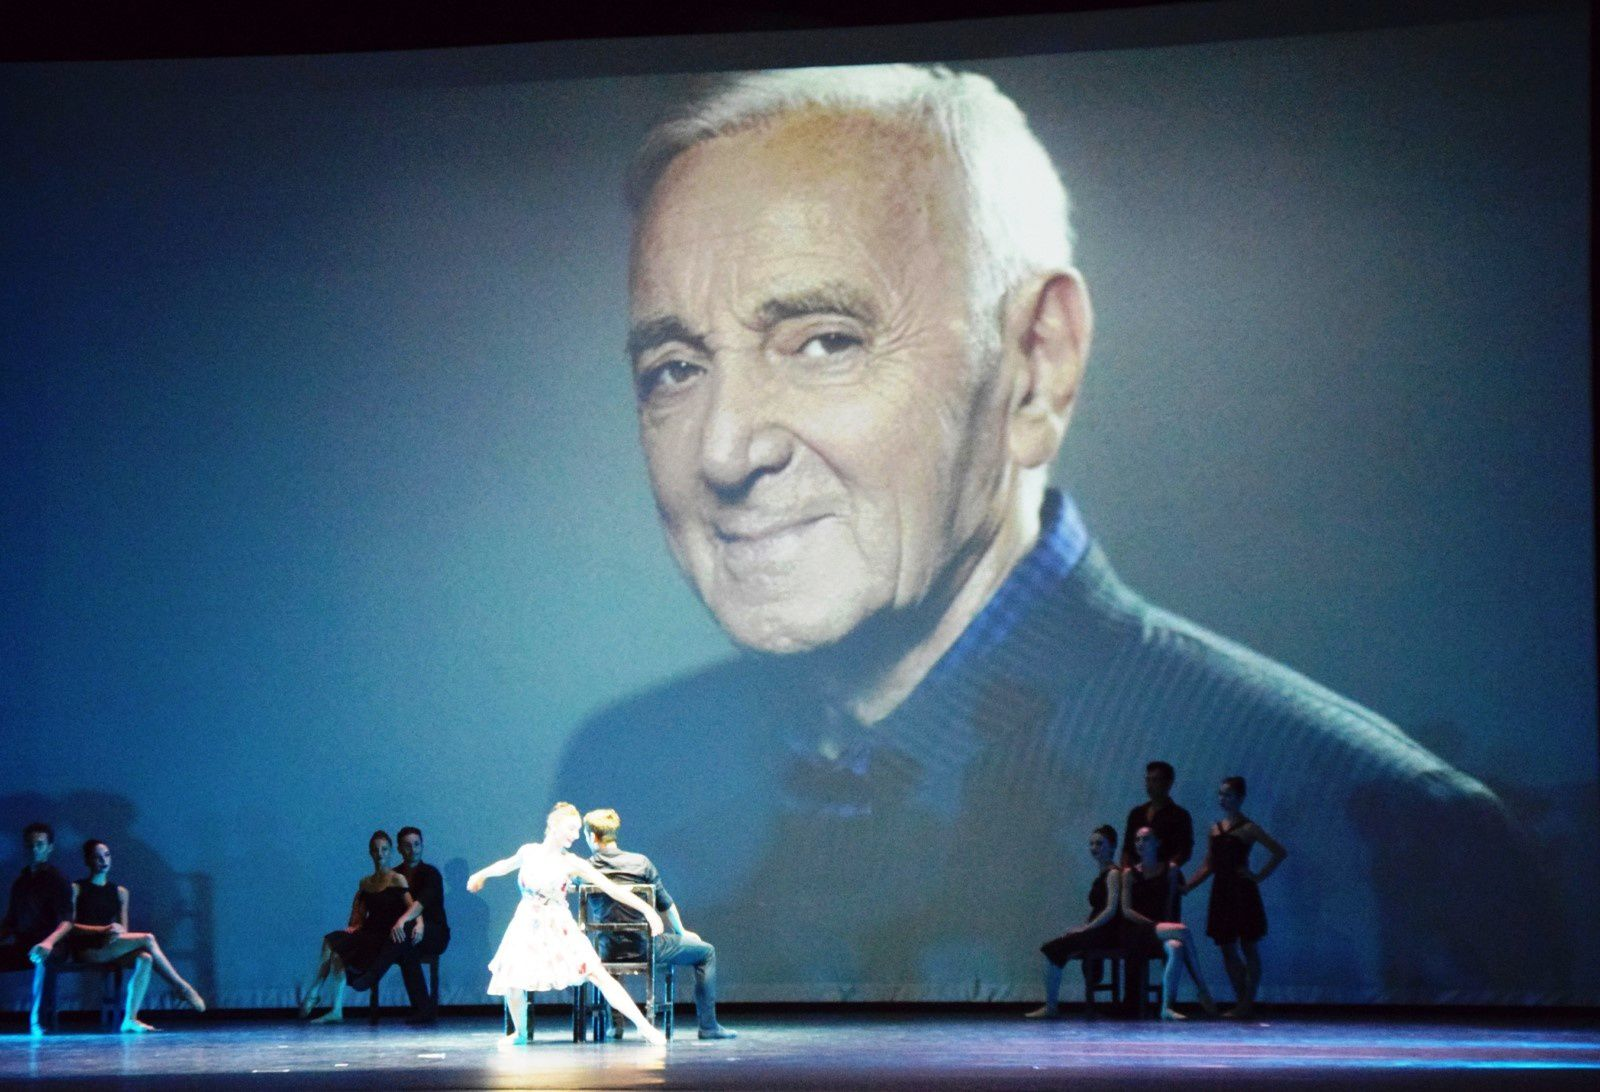 GRANDE ENTUSIASMO PER IL BALLETTO DI MILANO ALL'ARISTON DI SANREMO